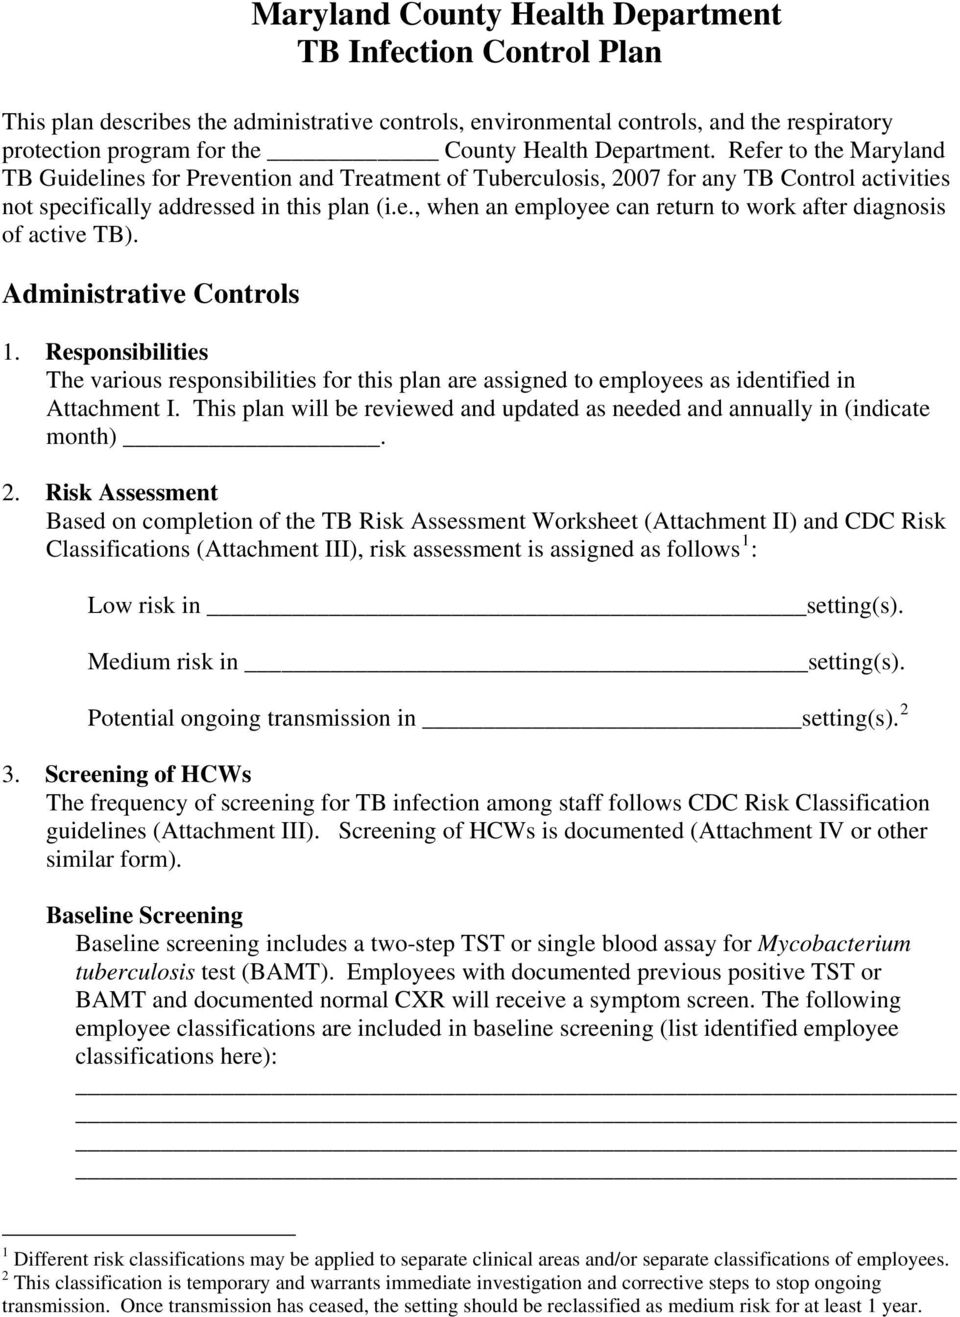 Administrative Controls 1. Responsibilities The various responsibilities for this plan are assigned to employees as identified in Attachment I.